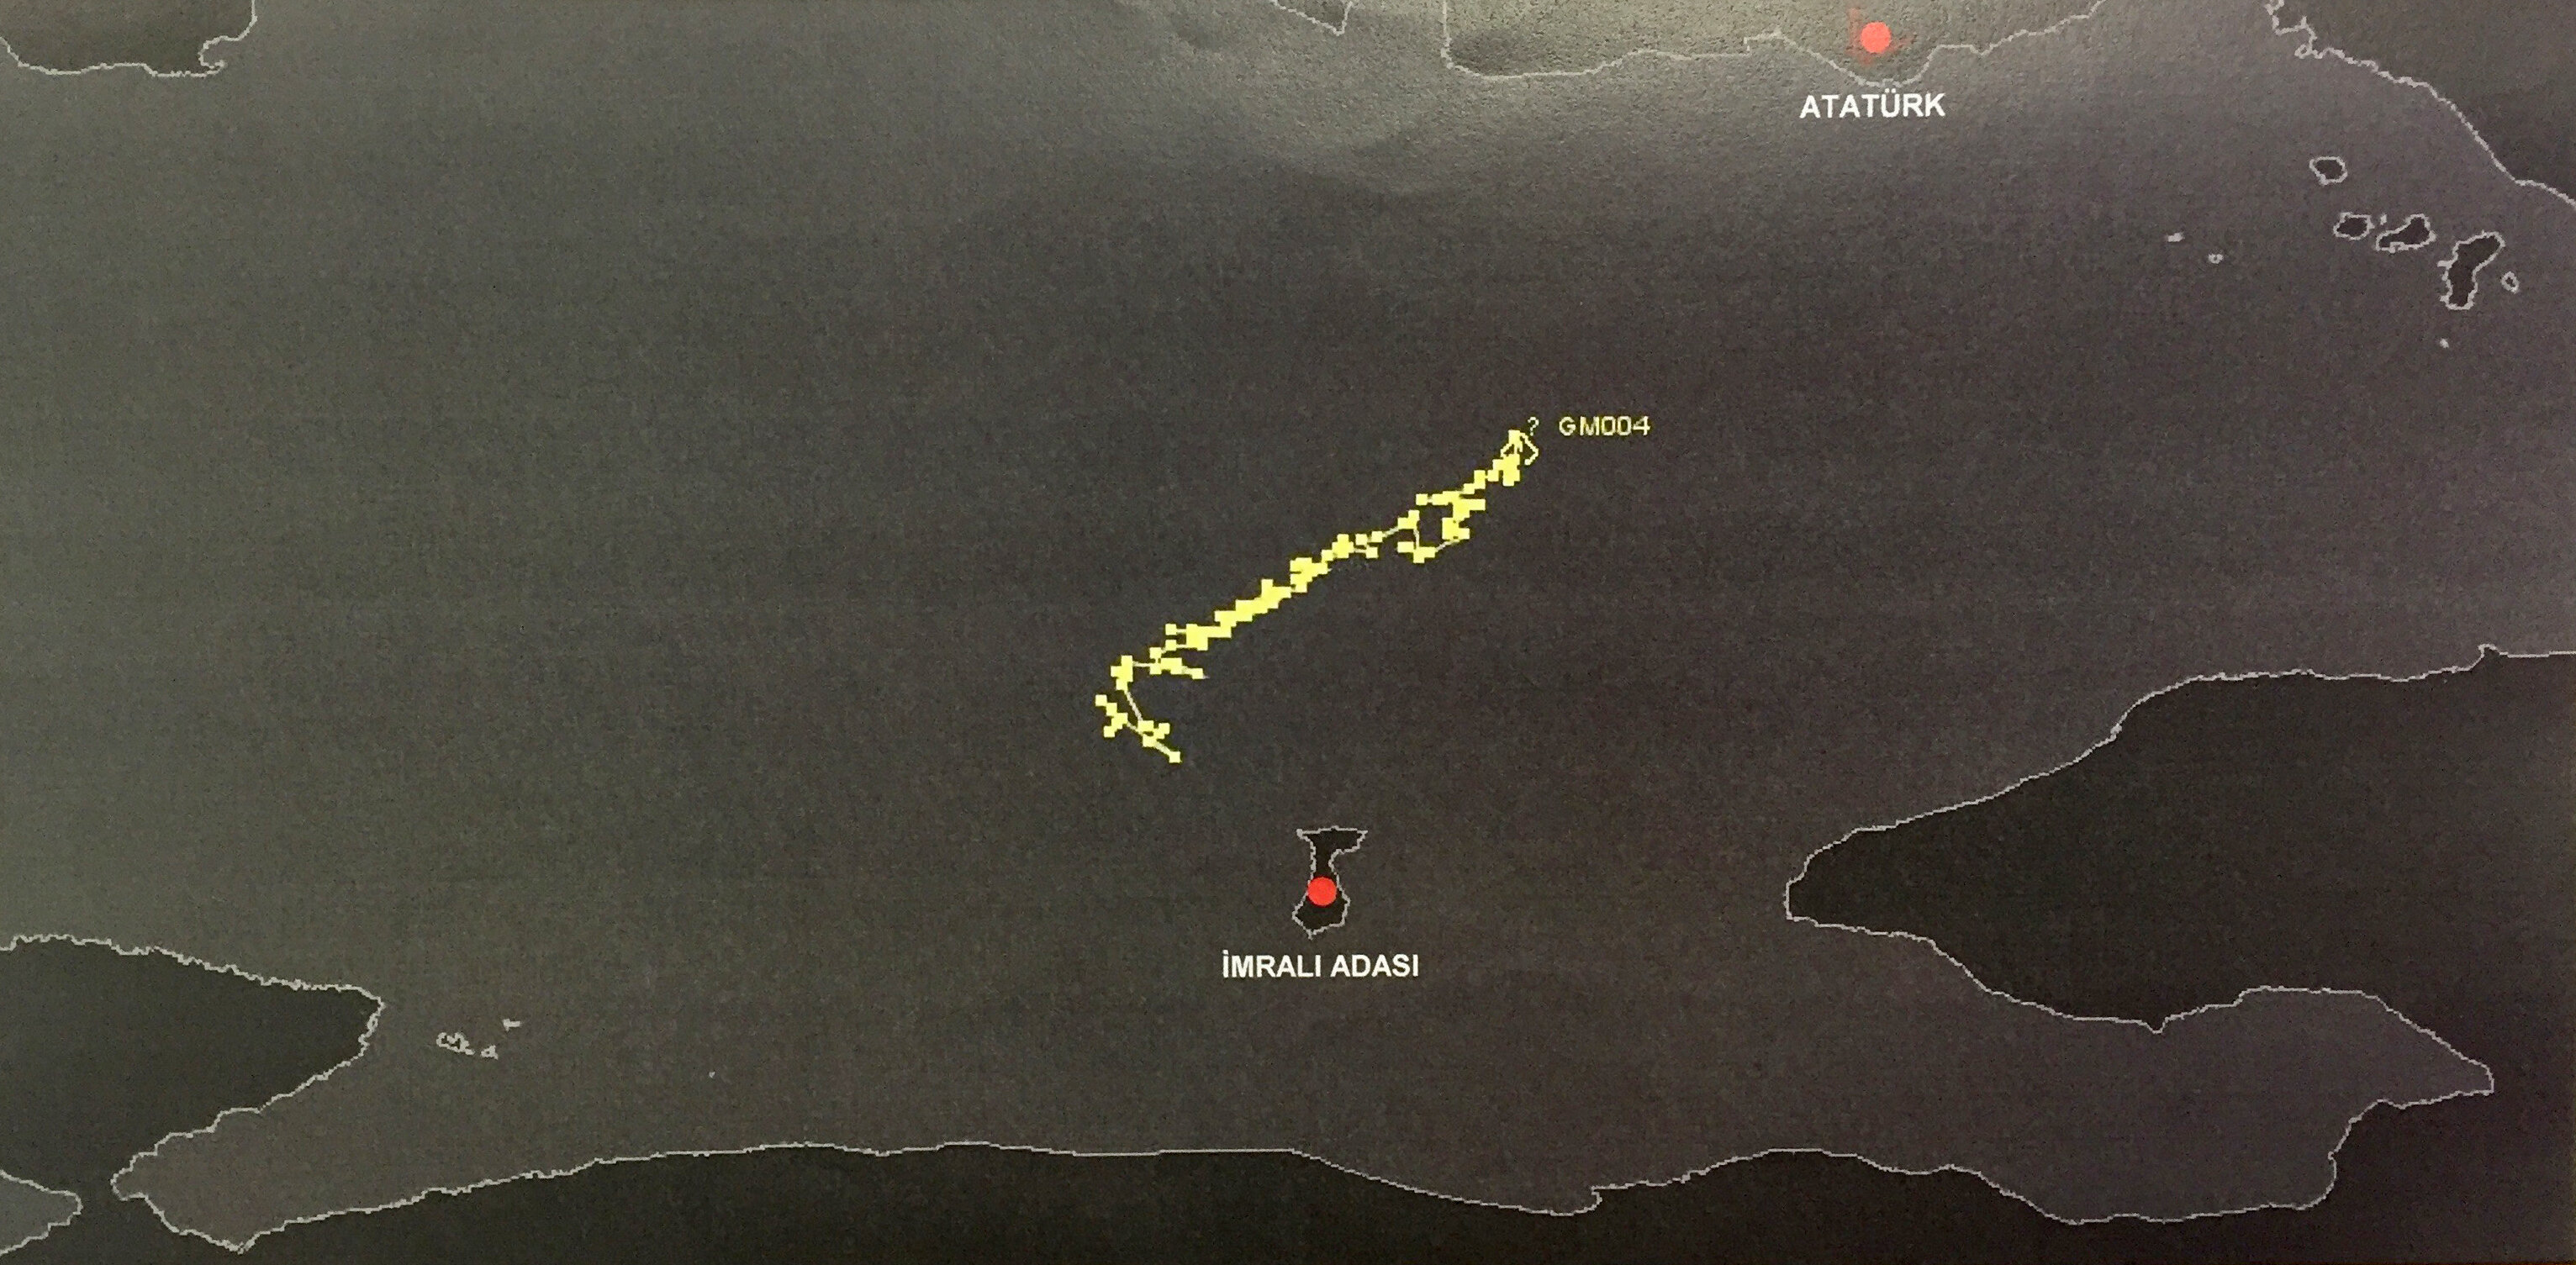 It was found that the helicopters were densely crowded around İmralı Island. The air traffic of different helicopters was reflected on the records at different times on İmralı Island.